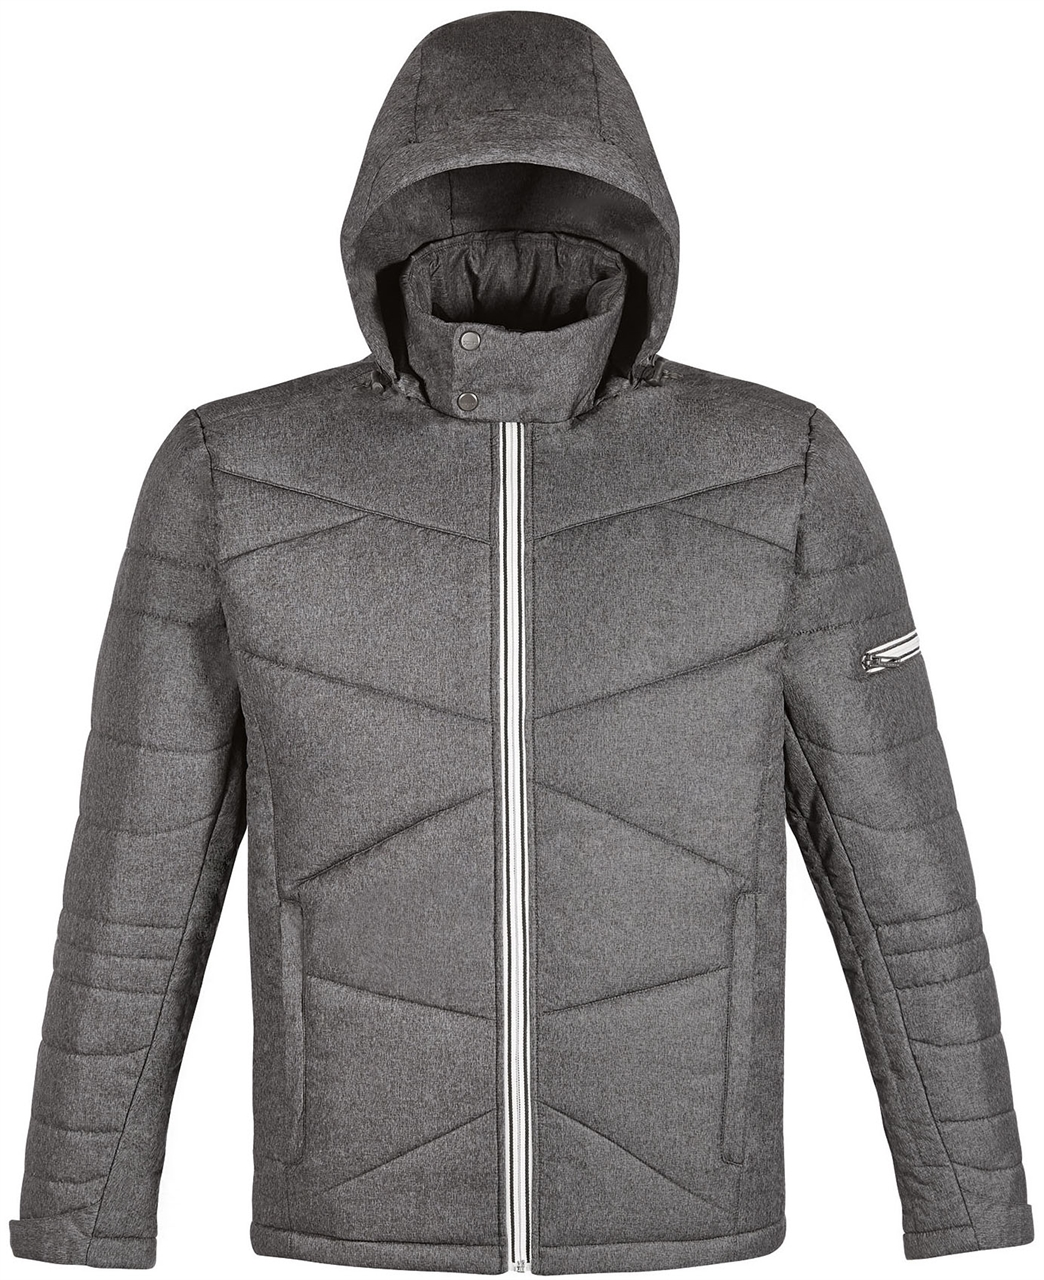 Picture of North End Avant Insulated Jackets With Heat Reflect Tech.